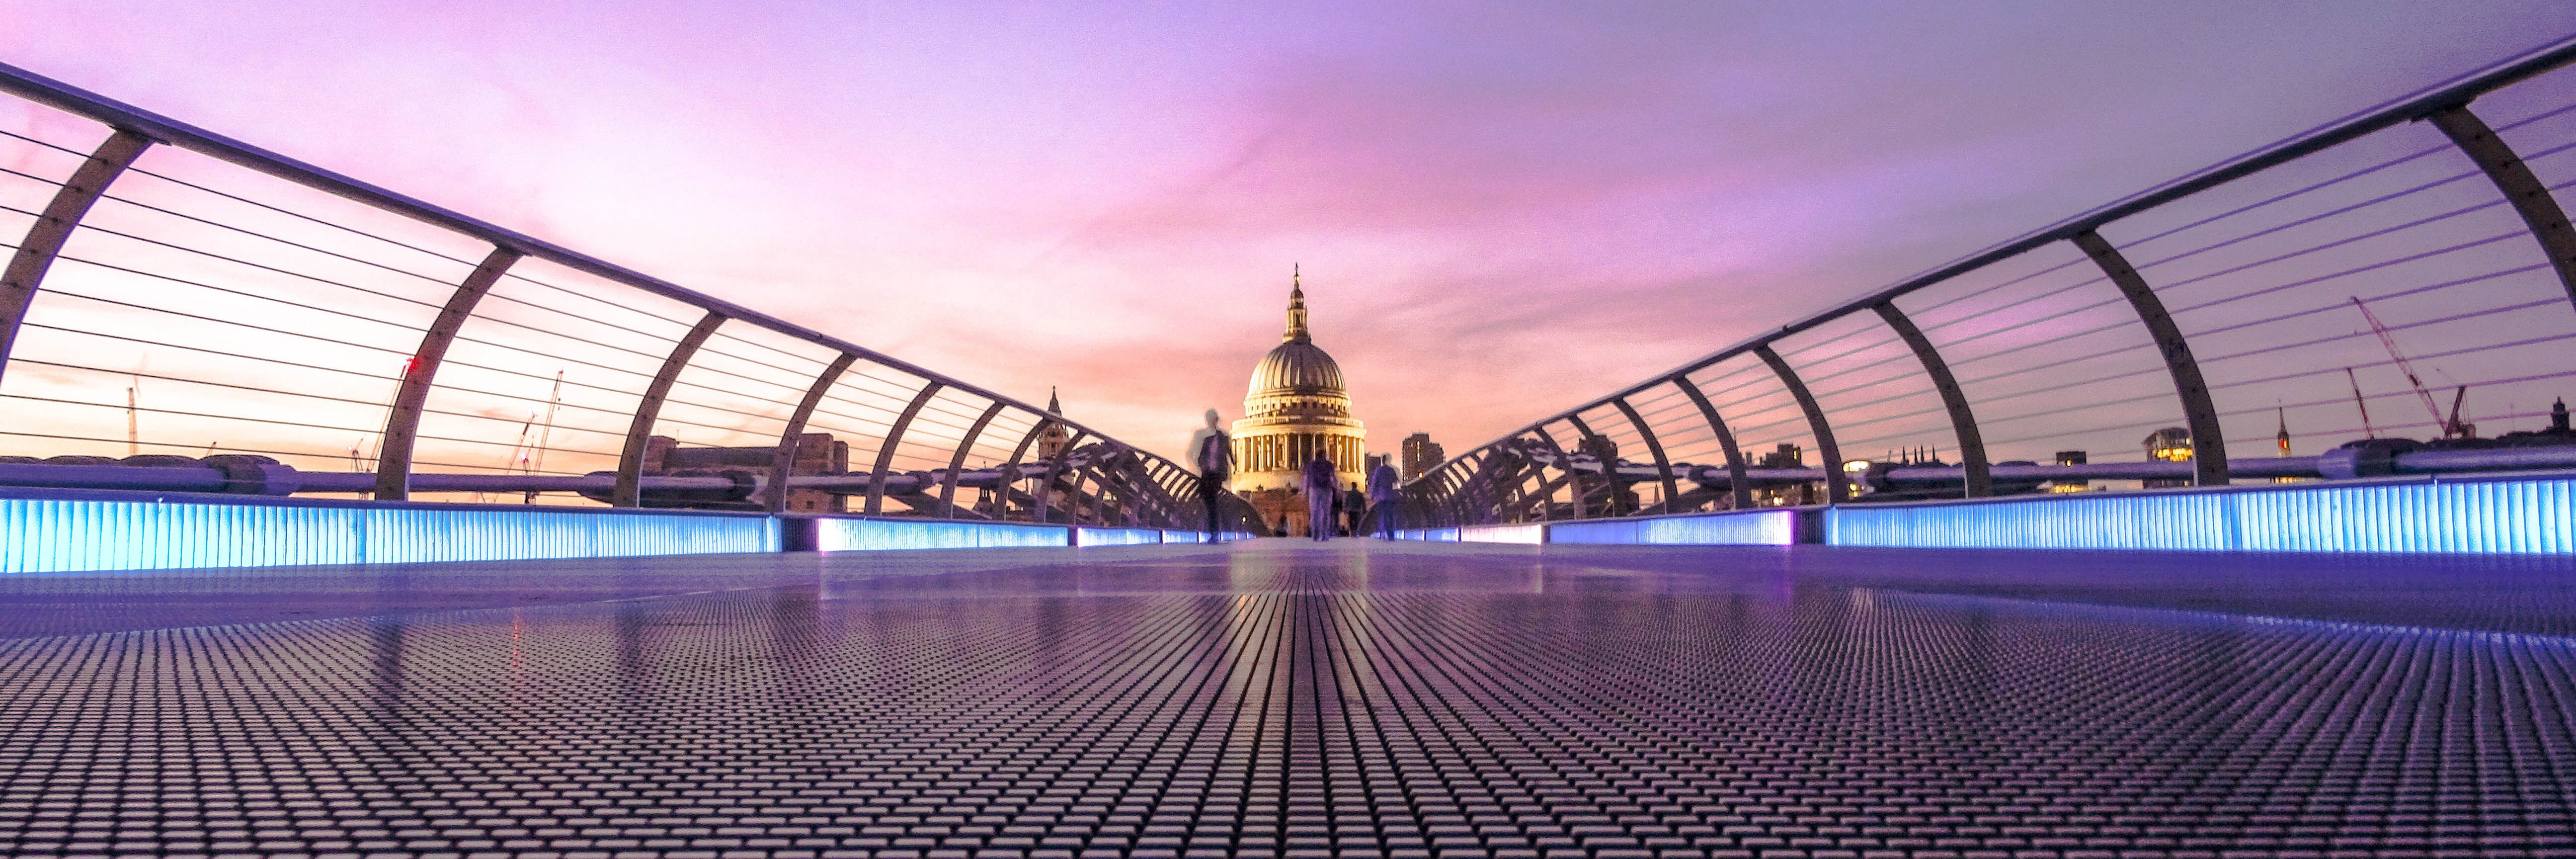 St Pauls Cathedral Millennium Bridge, London, United Kingdom